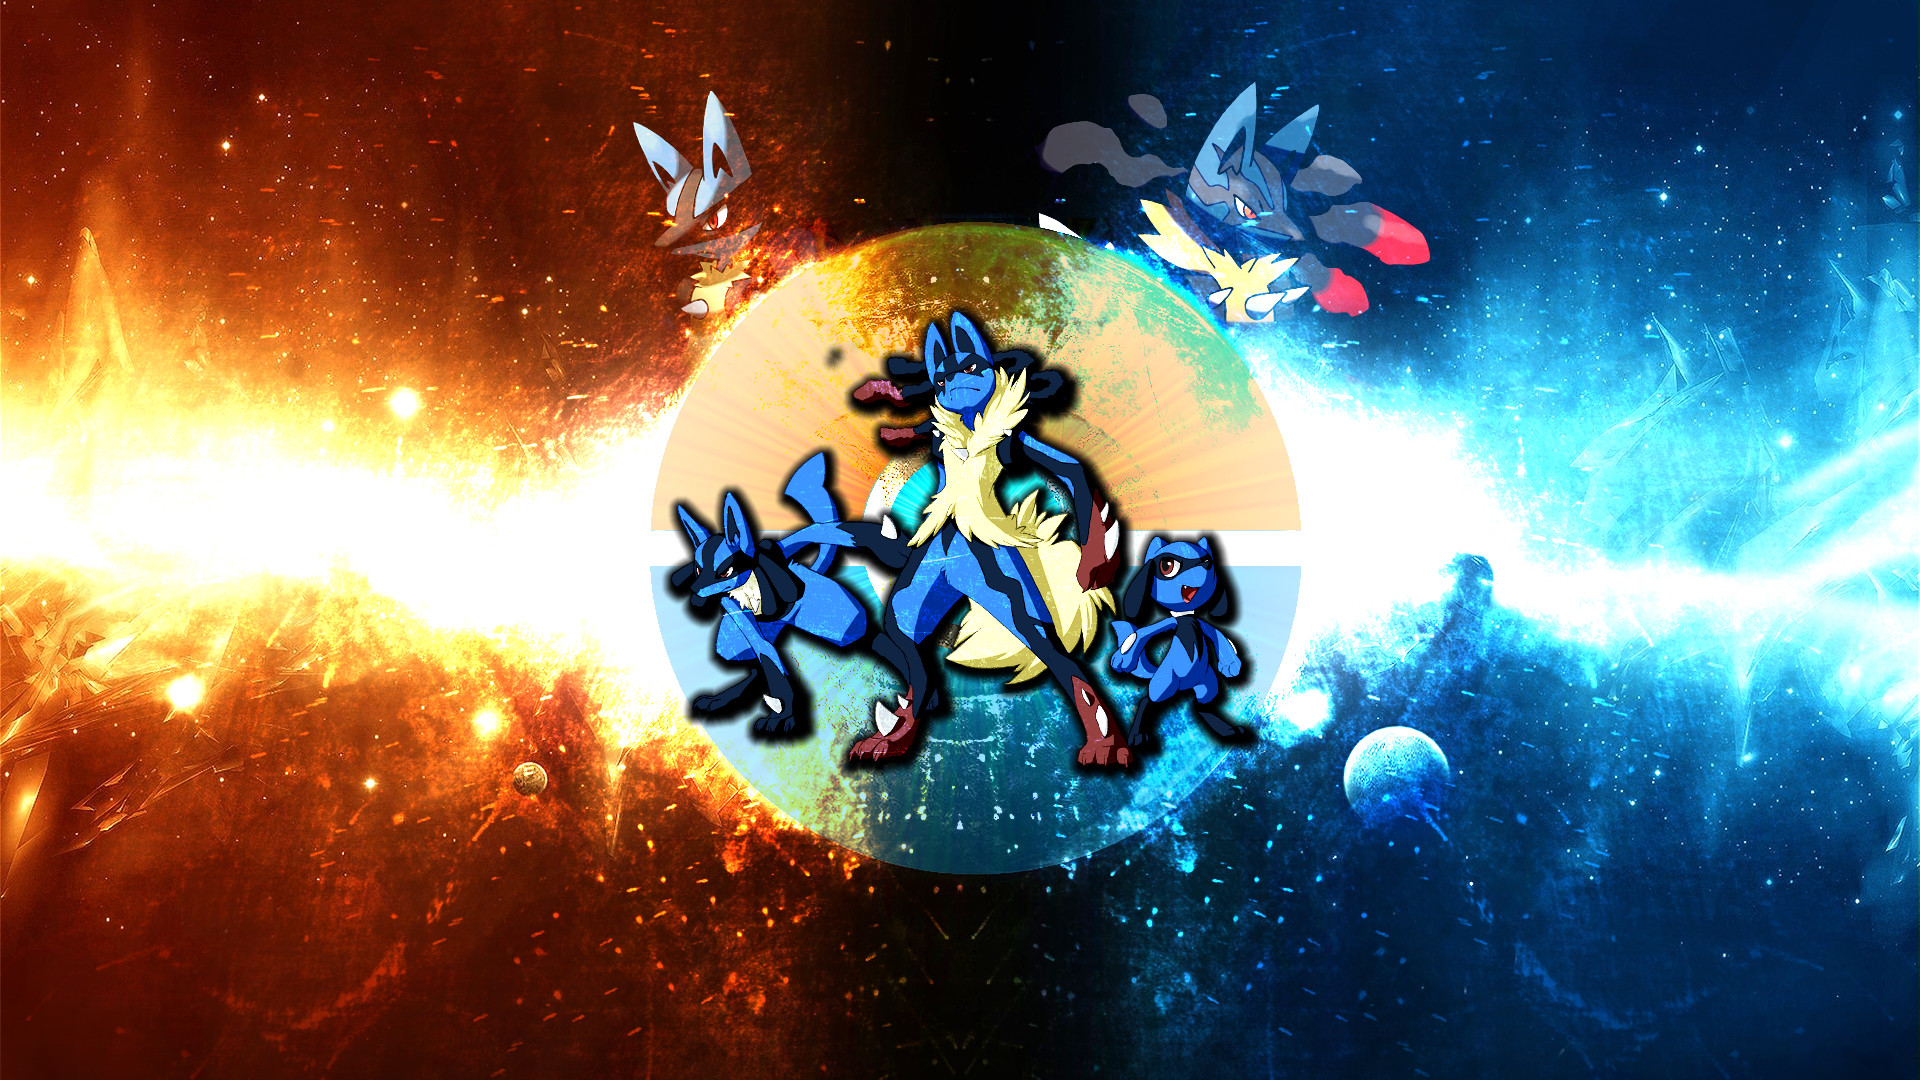 Res: 1920x1080, The Lucario Wallpaper by FRUITYNITE